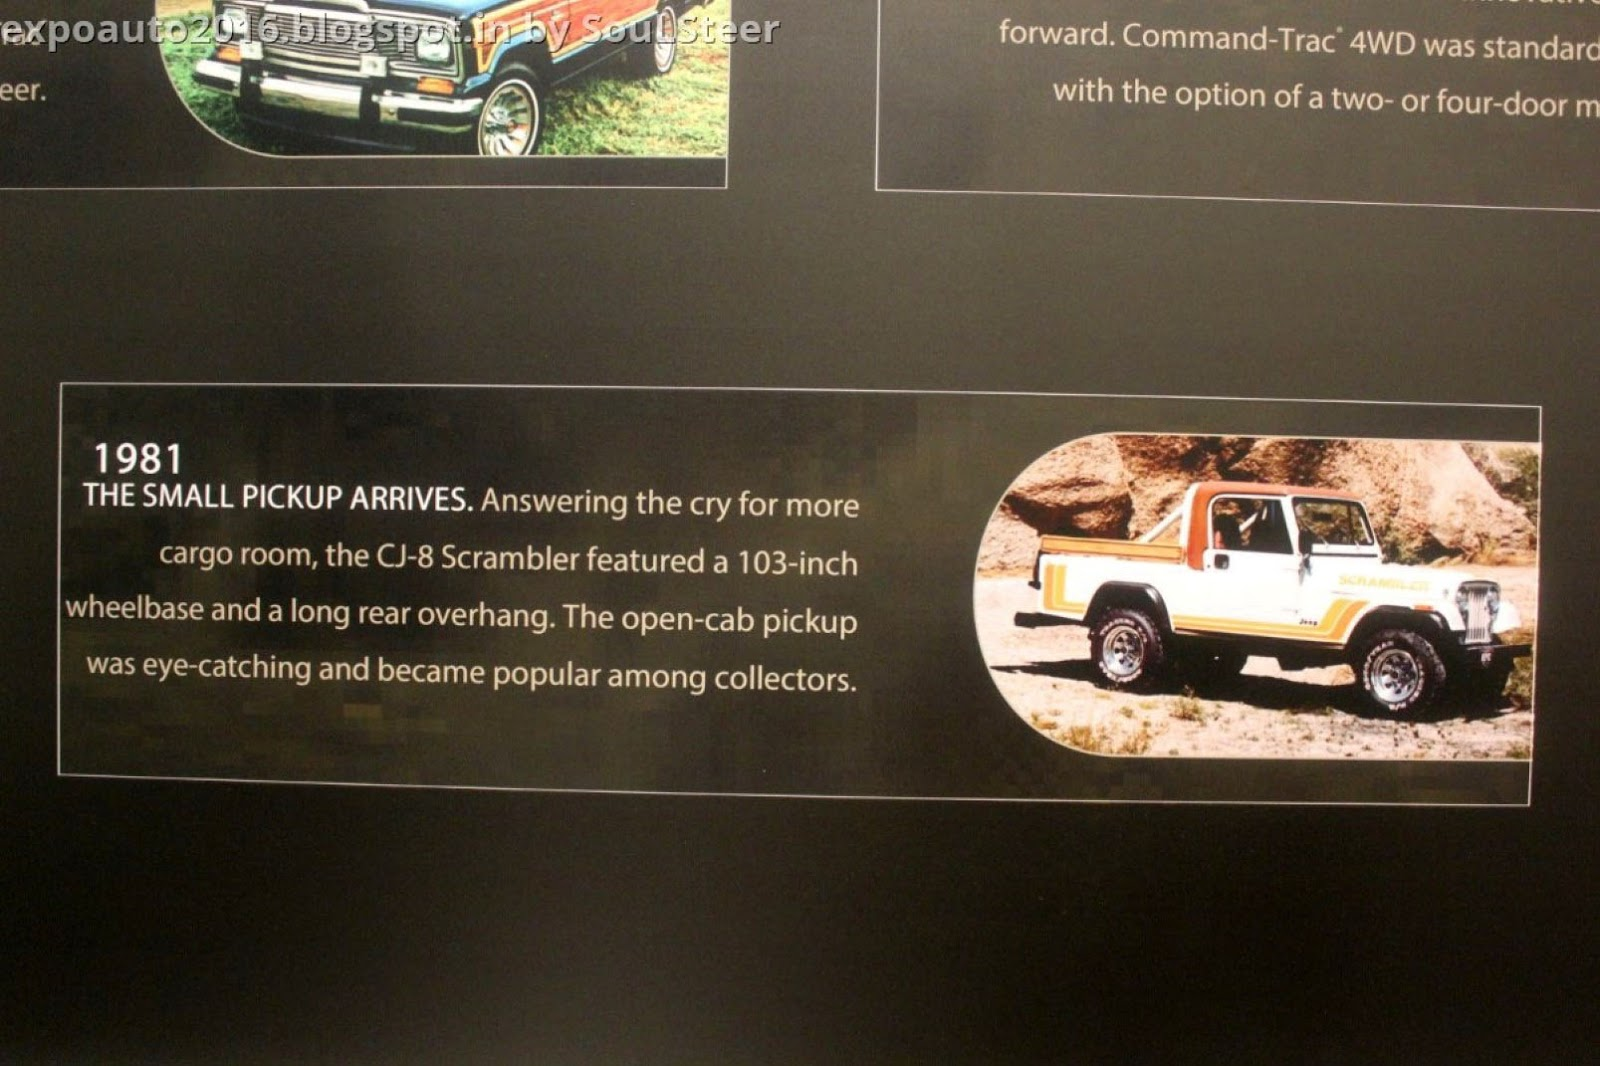 Auto Expo 2016 By Soulsteer Learn About The History Of Jeep From 1941 Willys Pickup Trucks Posted Shobhit Gosain At 1103 Pm